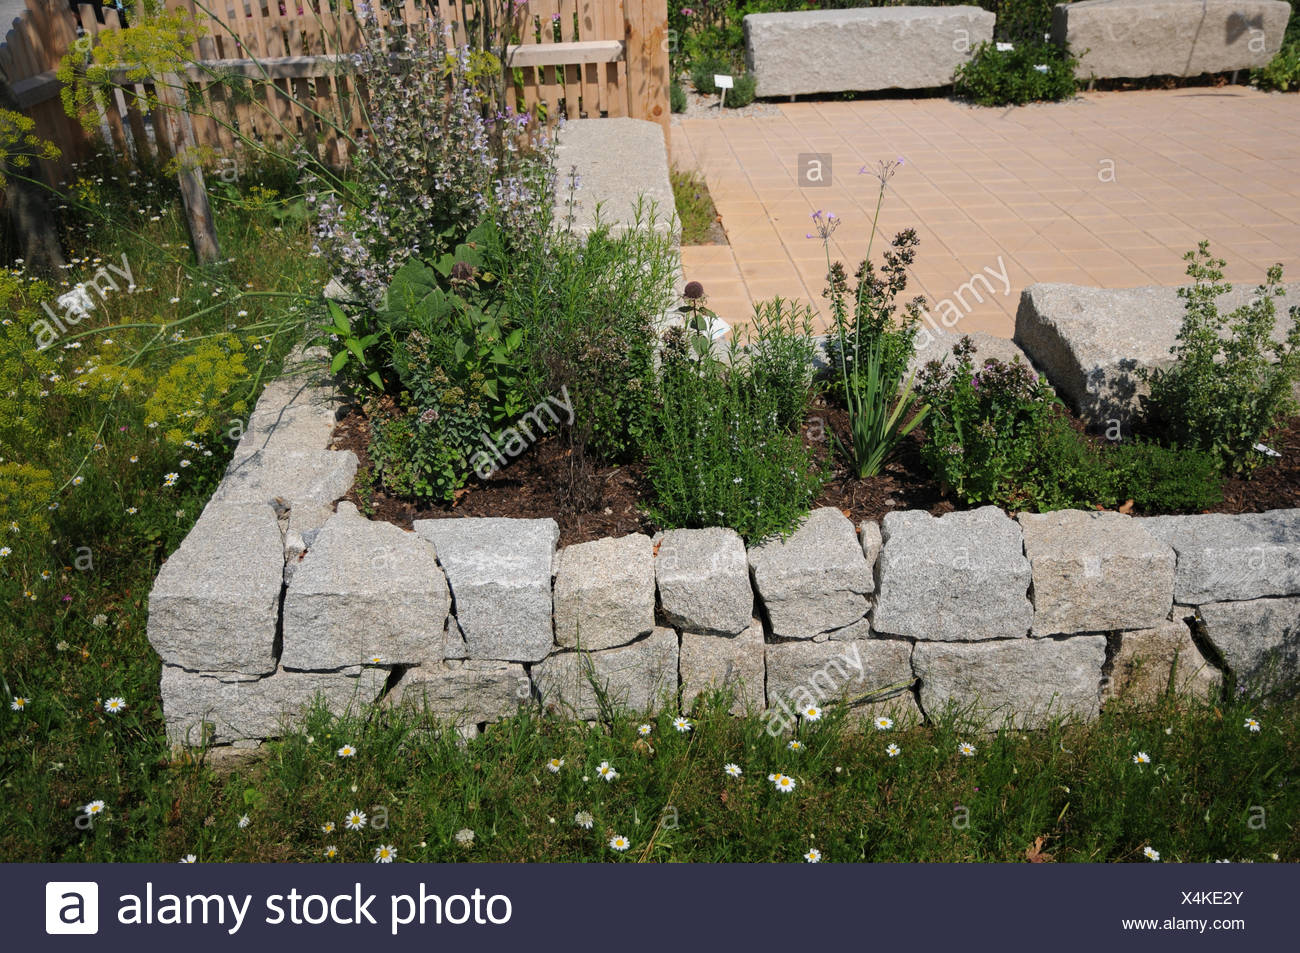 Gartengestaltung Hanglage Gabionen Raised Bed Made Of Granite Stones Stock Photo 278252659 Alamy